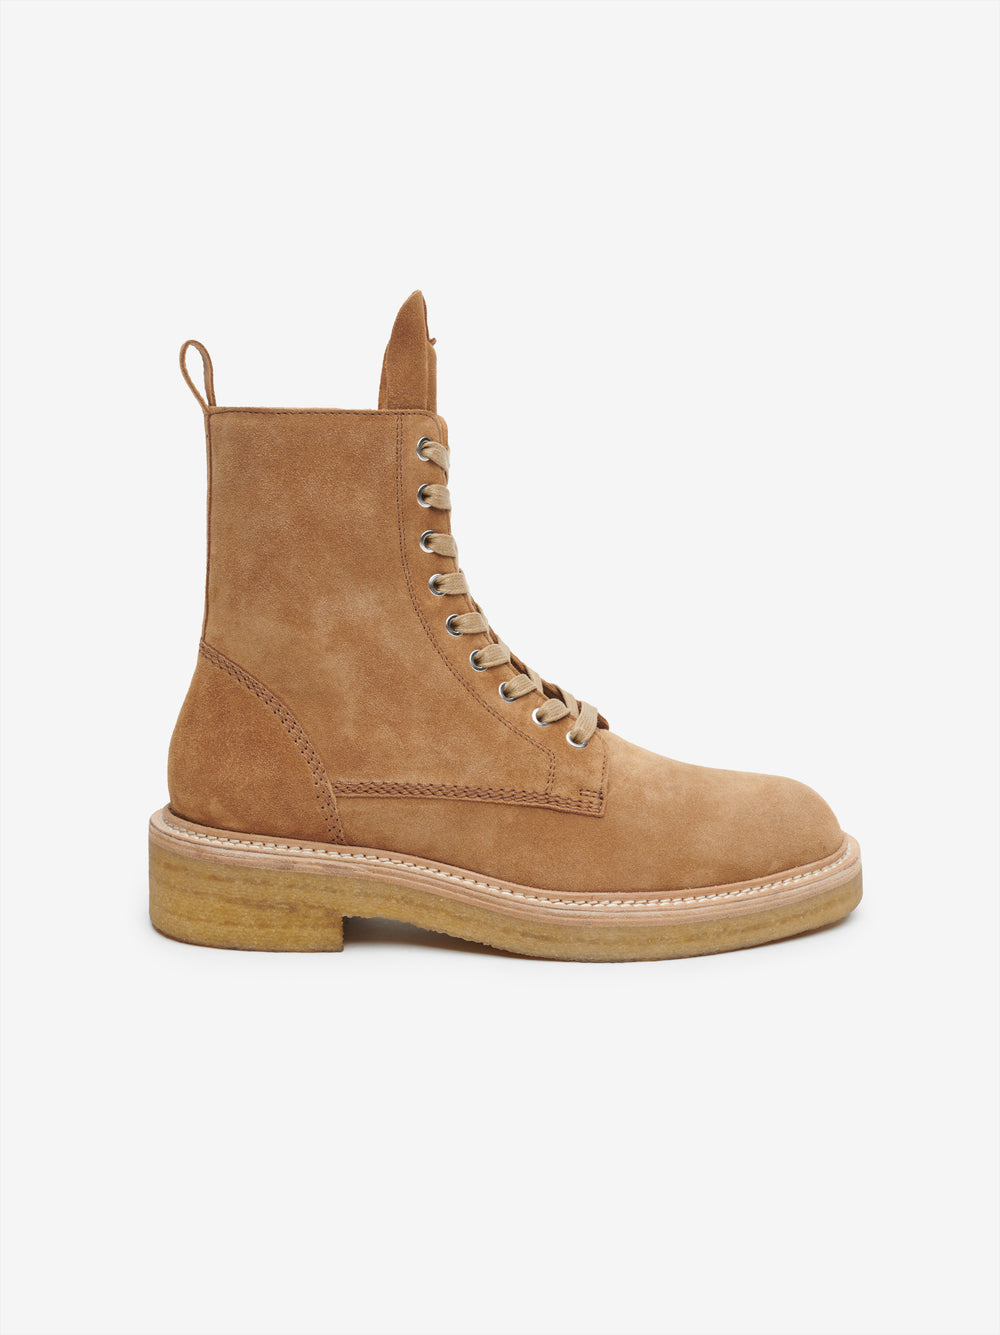 COMBAT CREPE SOLE BOOT - BROWN / NATURAL